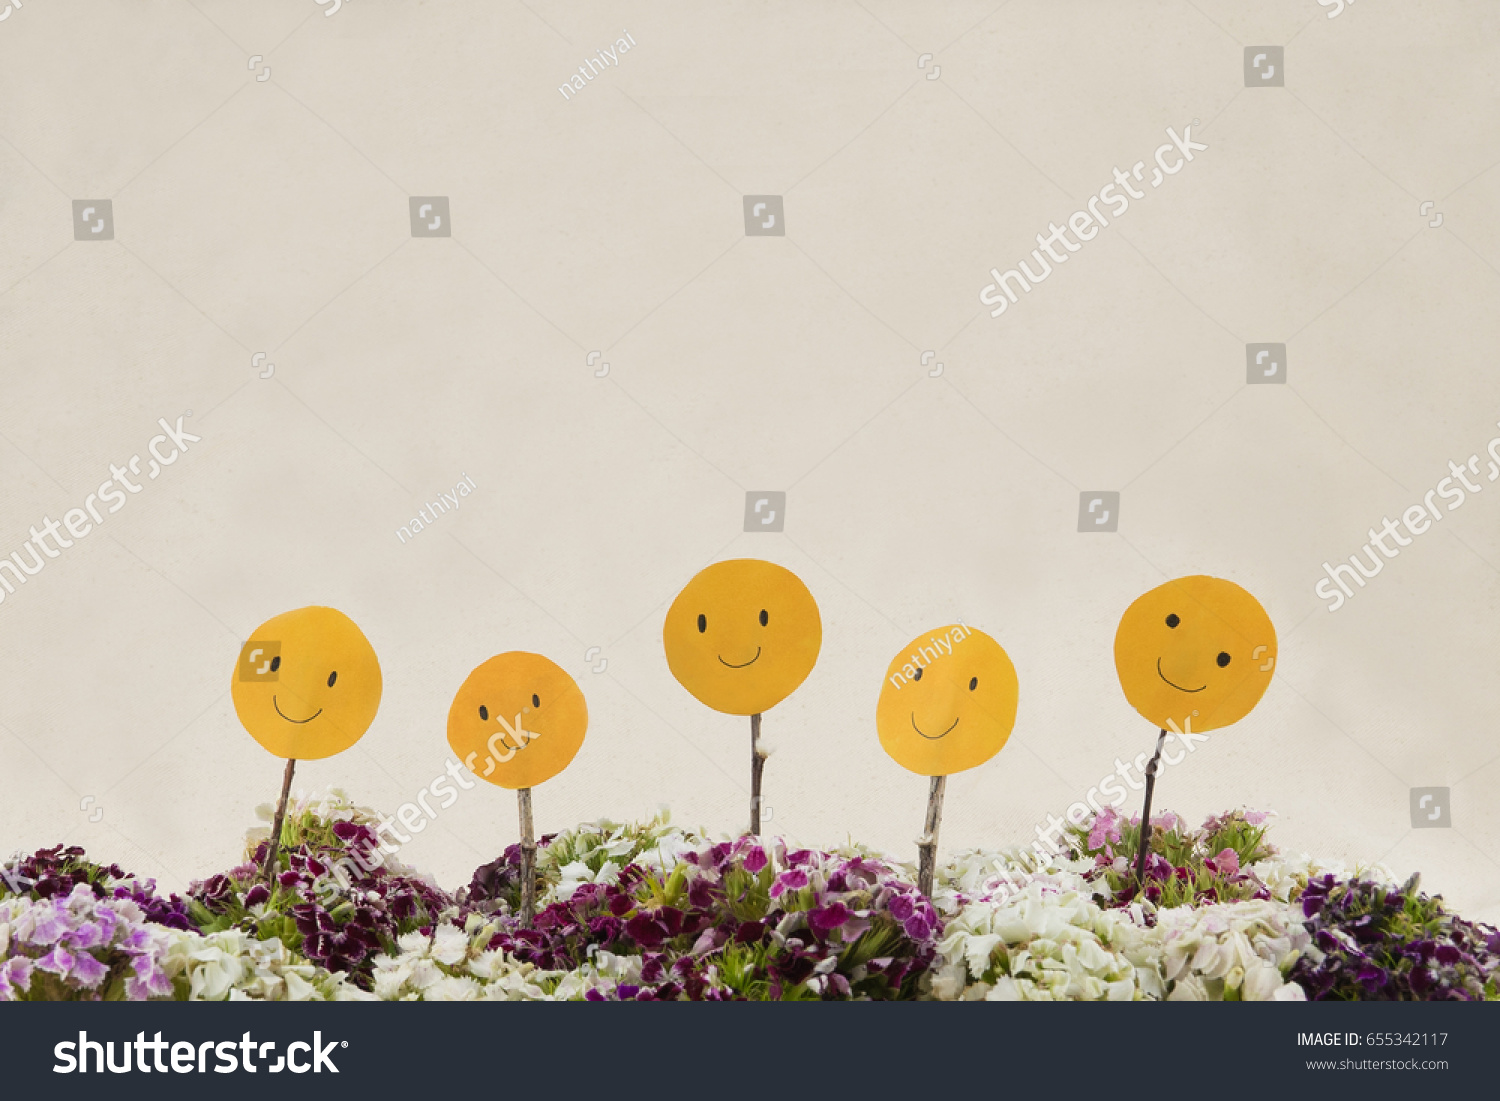 Smiling face colorful sweet william flowers stock photo 655342117 smiling face with colorful sweet william flowers bouquet with copy space izmirmasajfo